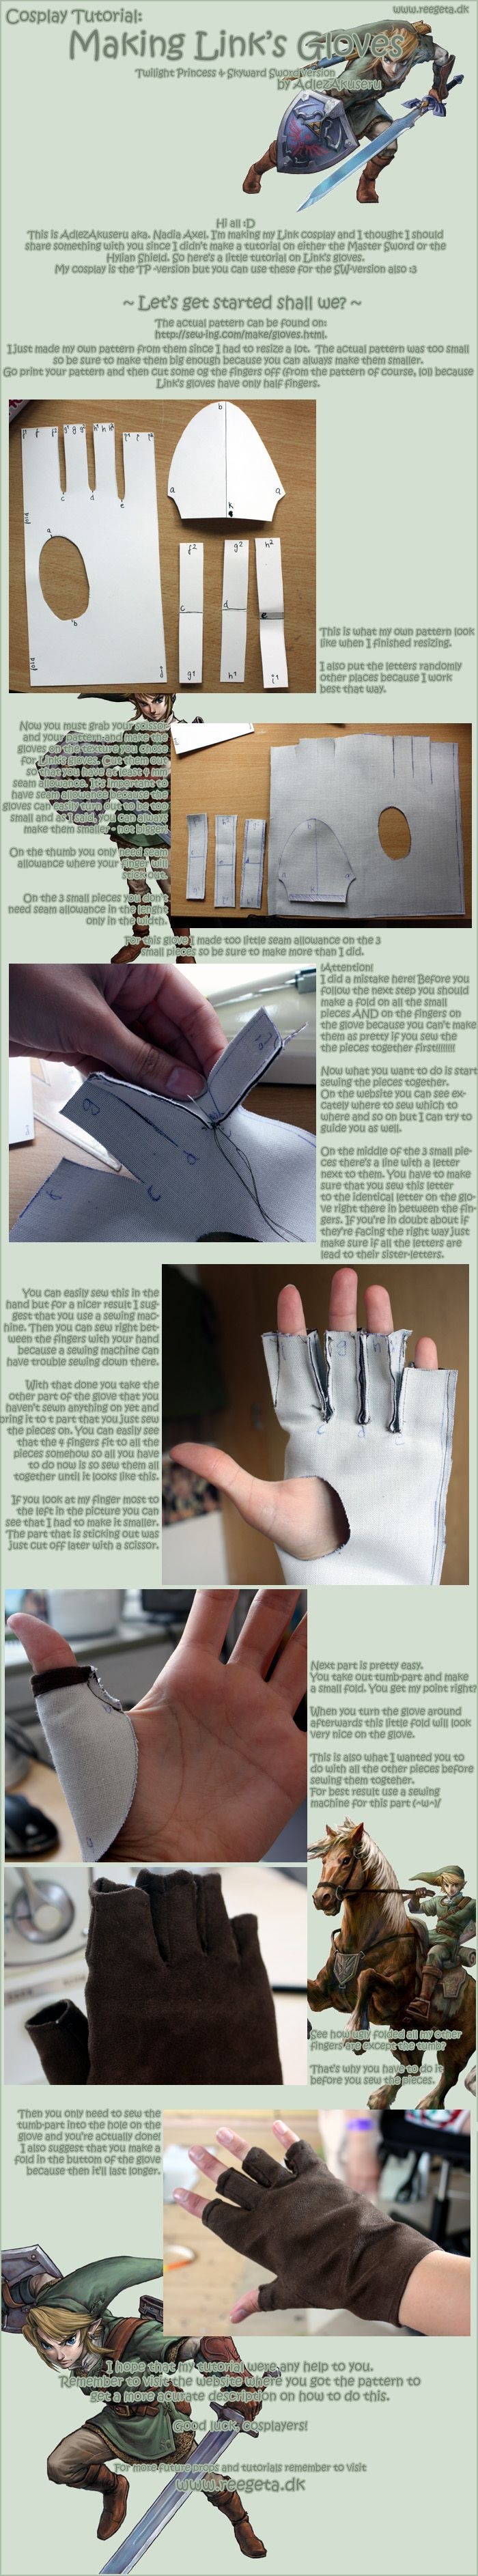 Tutorial: Link's Gloves, I have a Link costume but the gloves are really bad and look fake/plastic.. I should make these before the next Halloween...! <3